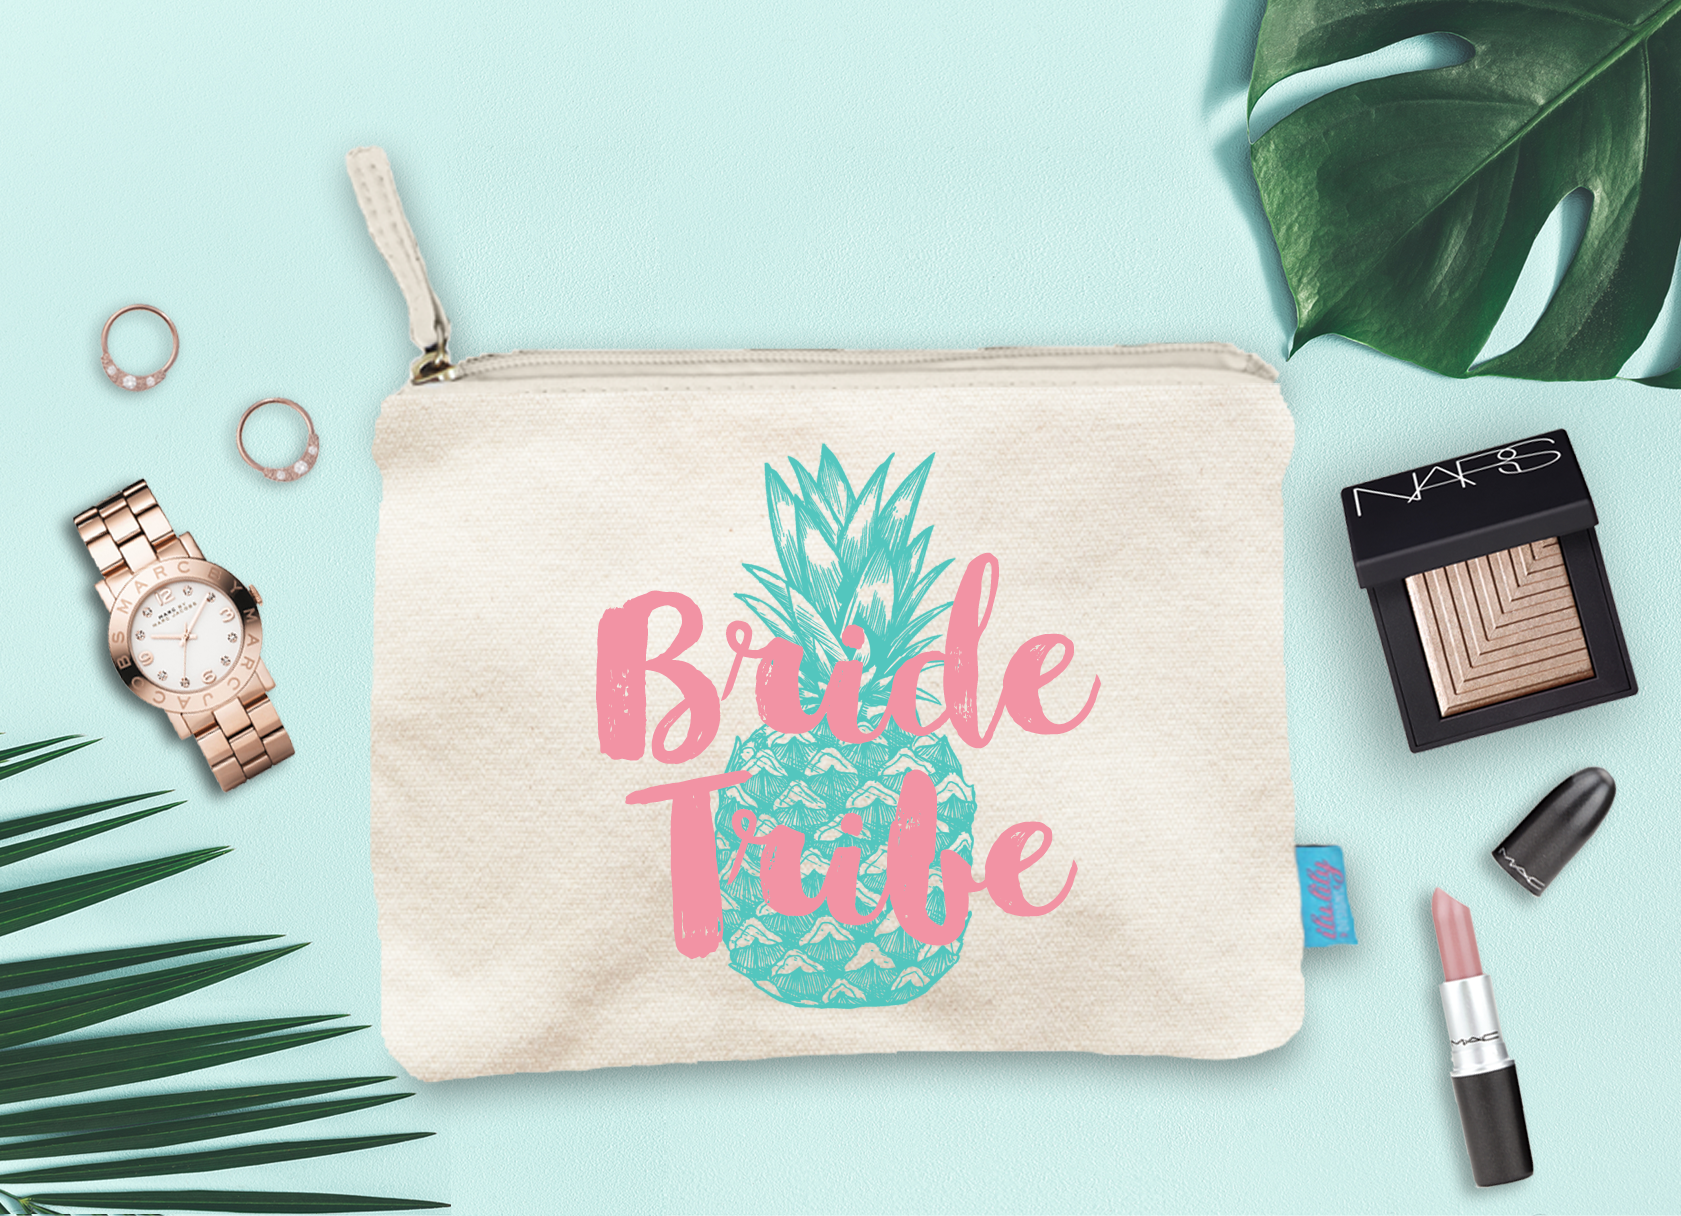 Bride Tribe Pineapple -Bridal Party Bachelorette Party Makeup Cosmetic Bag